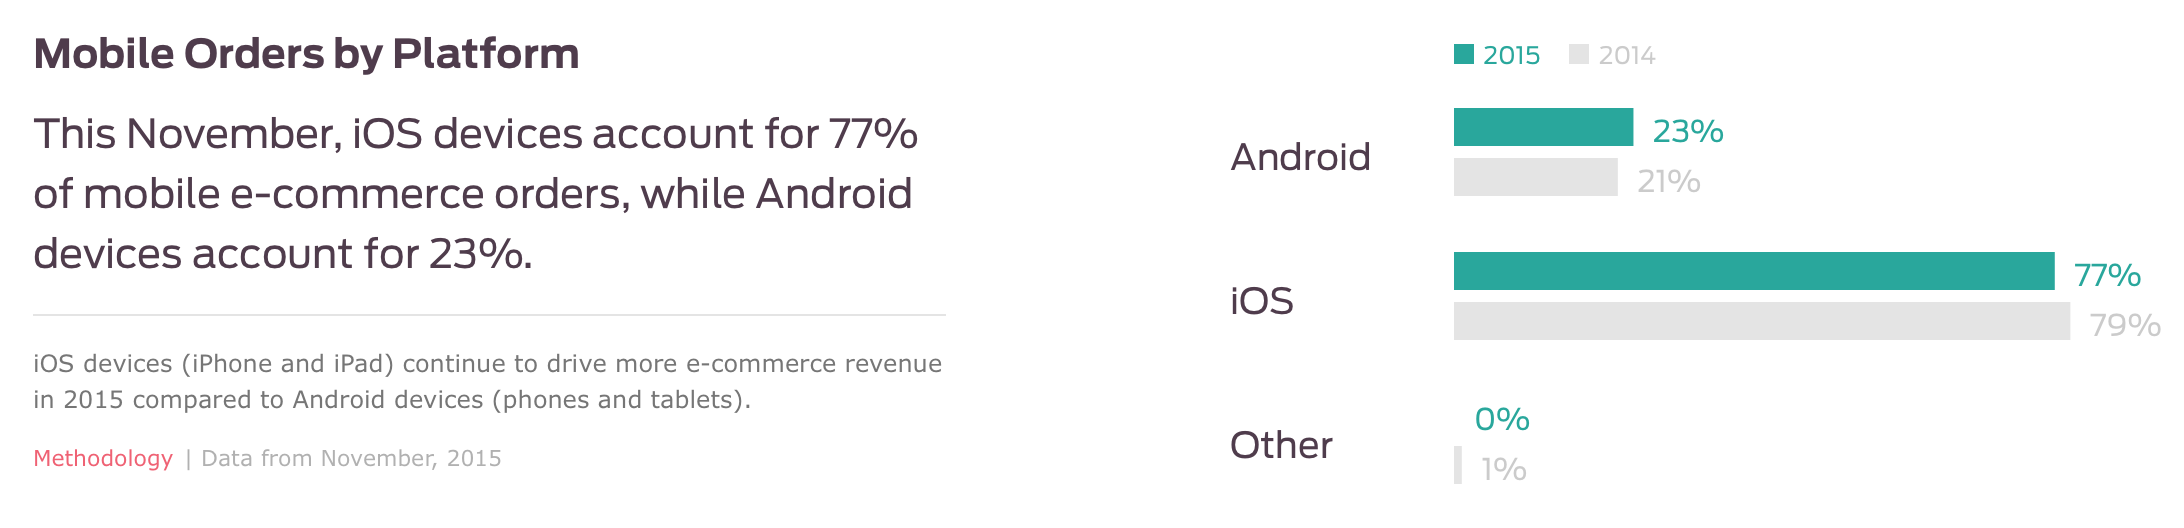 mobile orders by device ios vs android